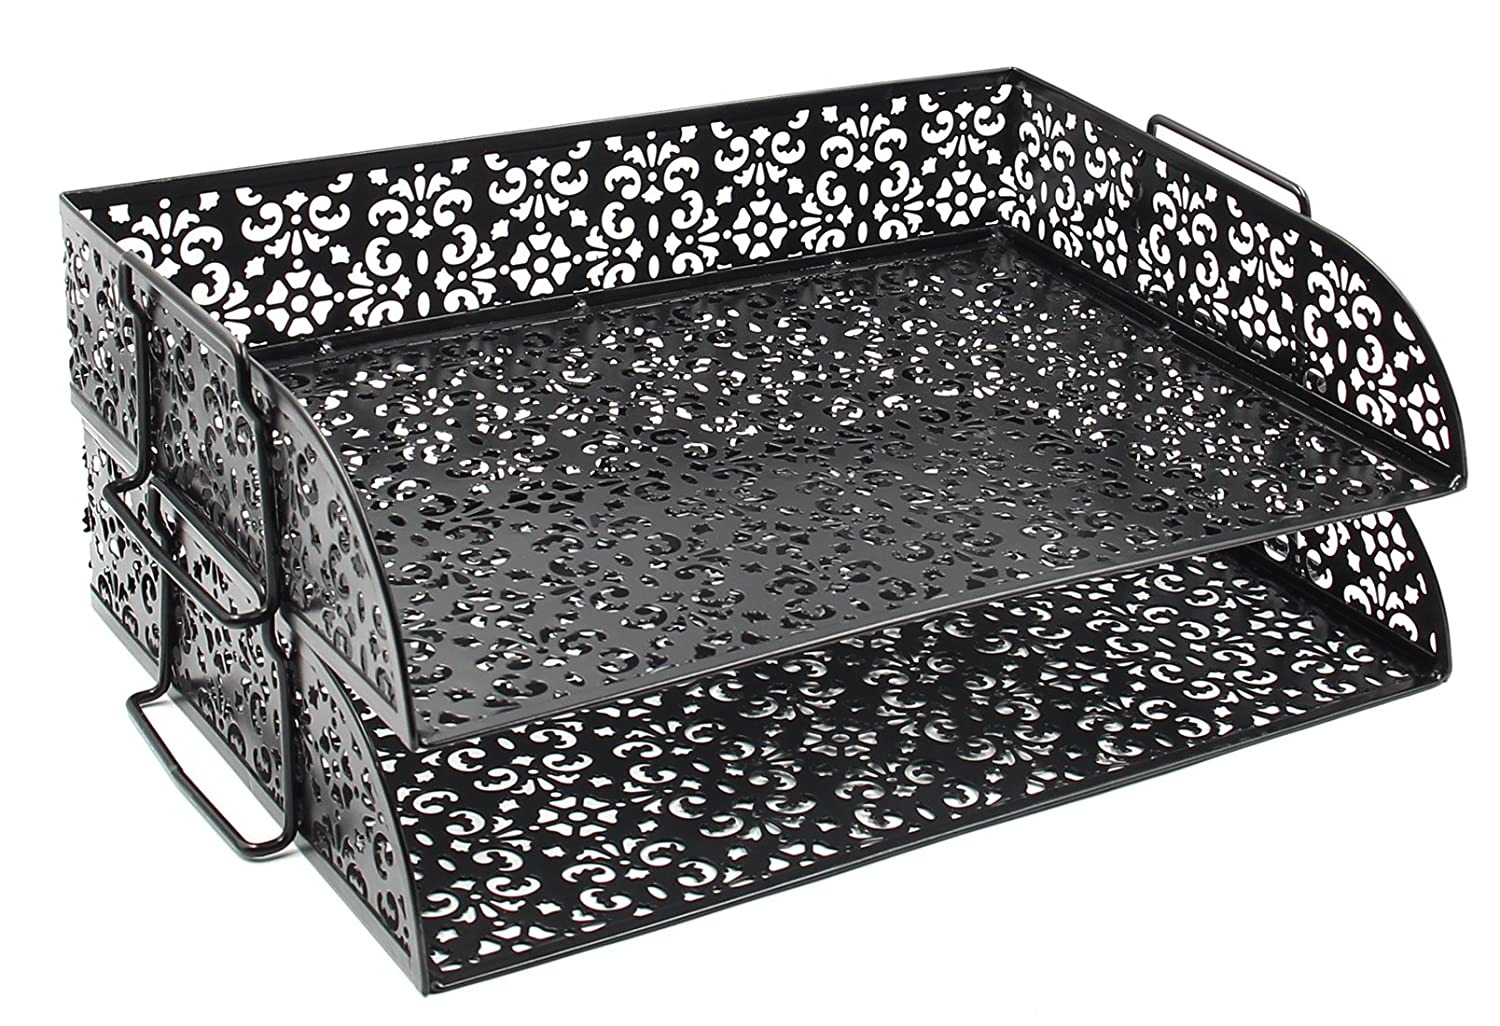 EasyPAG 2 Tier Stackable Desk Trays Document Letter Organizer (Black, Mixed Flower Pattern) Baike